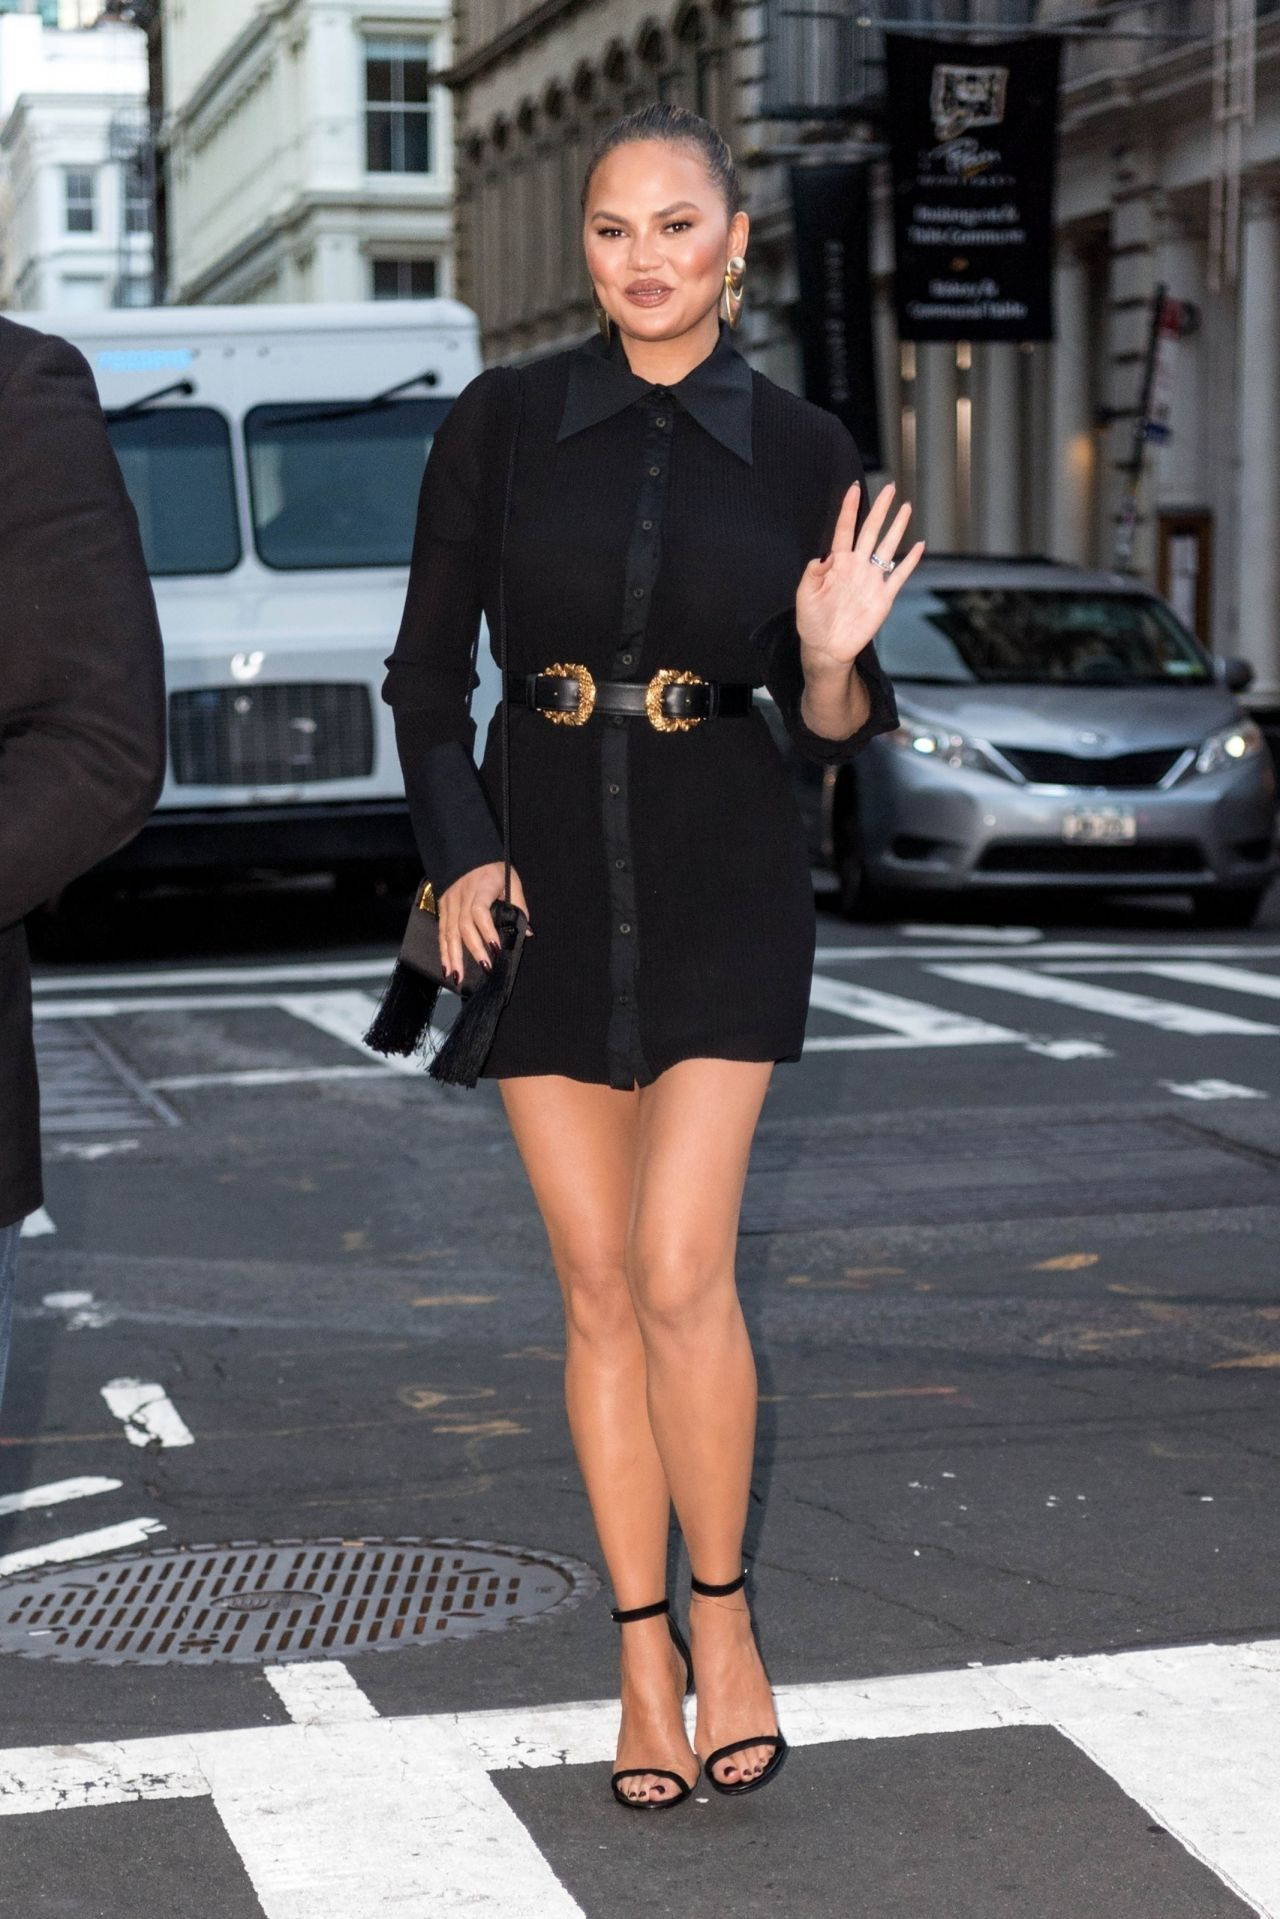 And New 10232018 Chrissy Black Teigen Dress In A Short York Heels JulFK1T3c